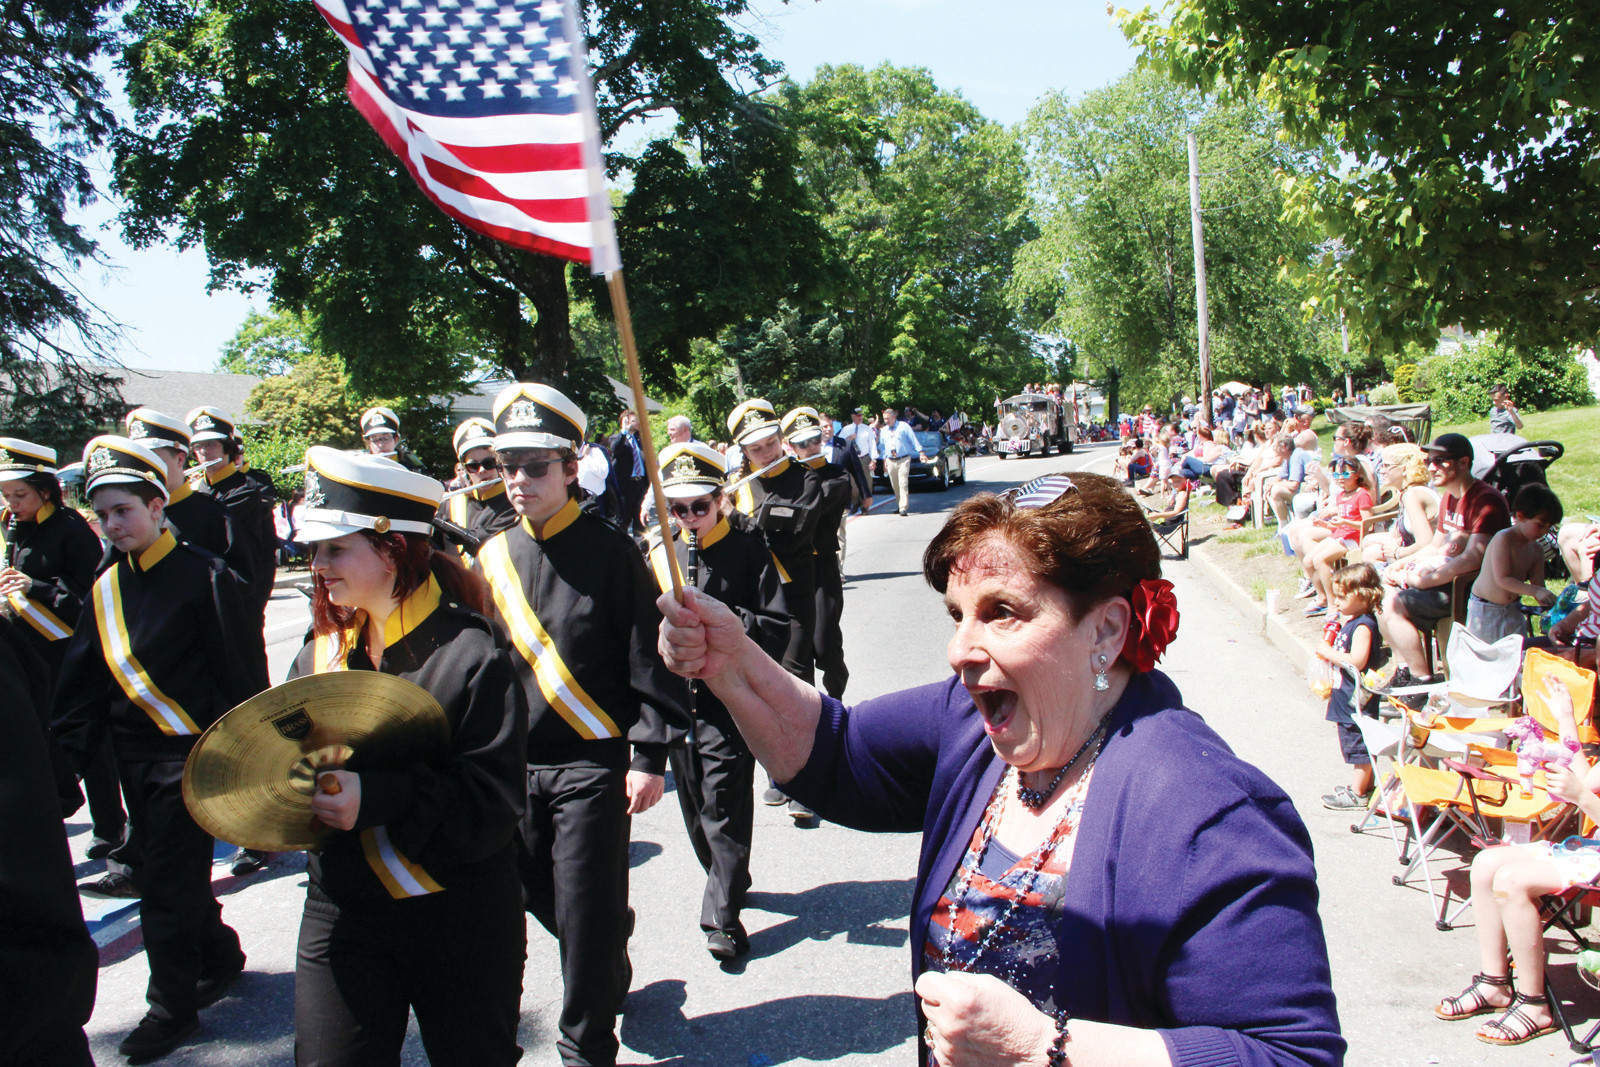 CHEERING THEM ON: Flag waving Marcia Beagan cheers the Pilgrim marching band. She did the same for Toll Gate, Cranston East and Cranston West.